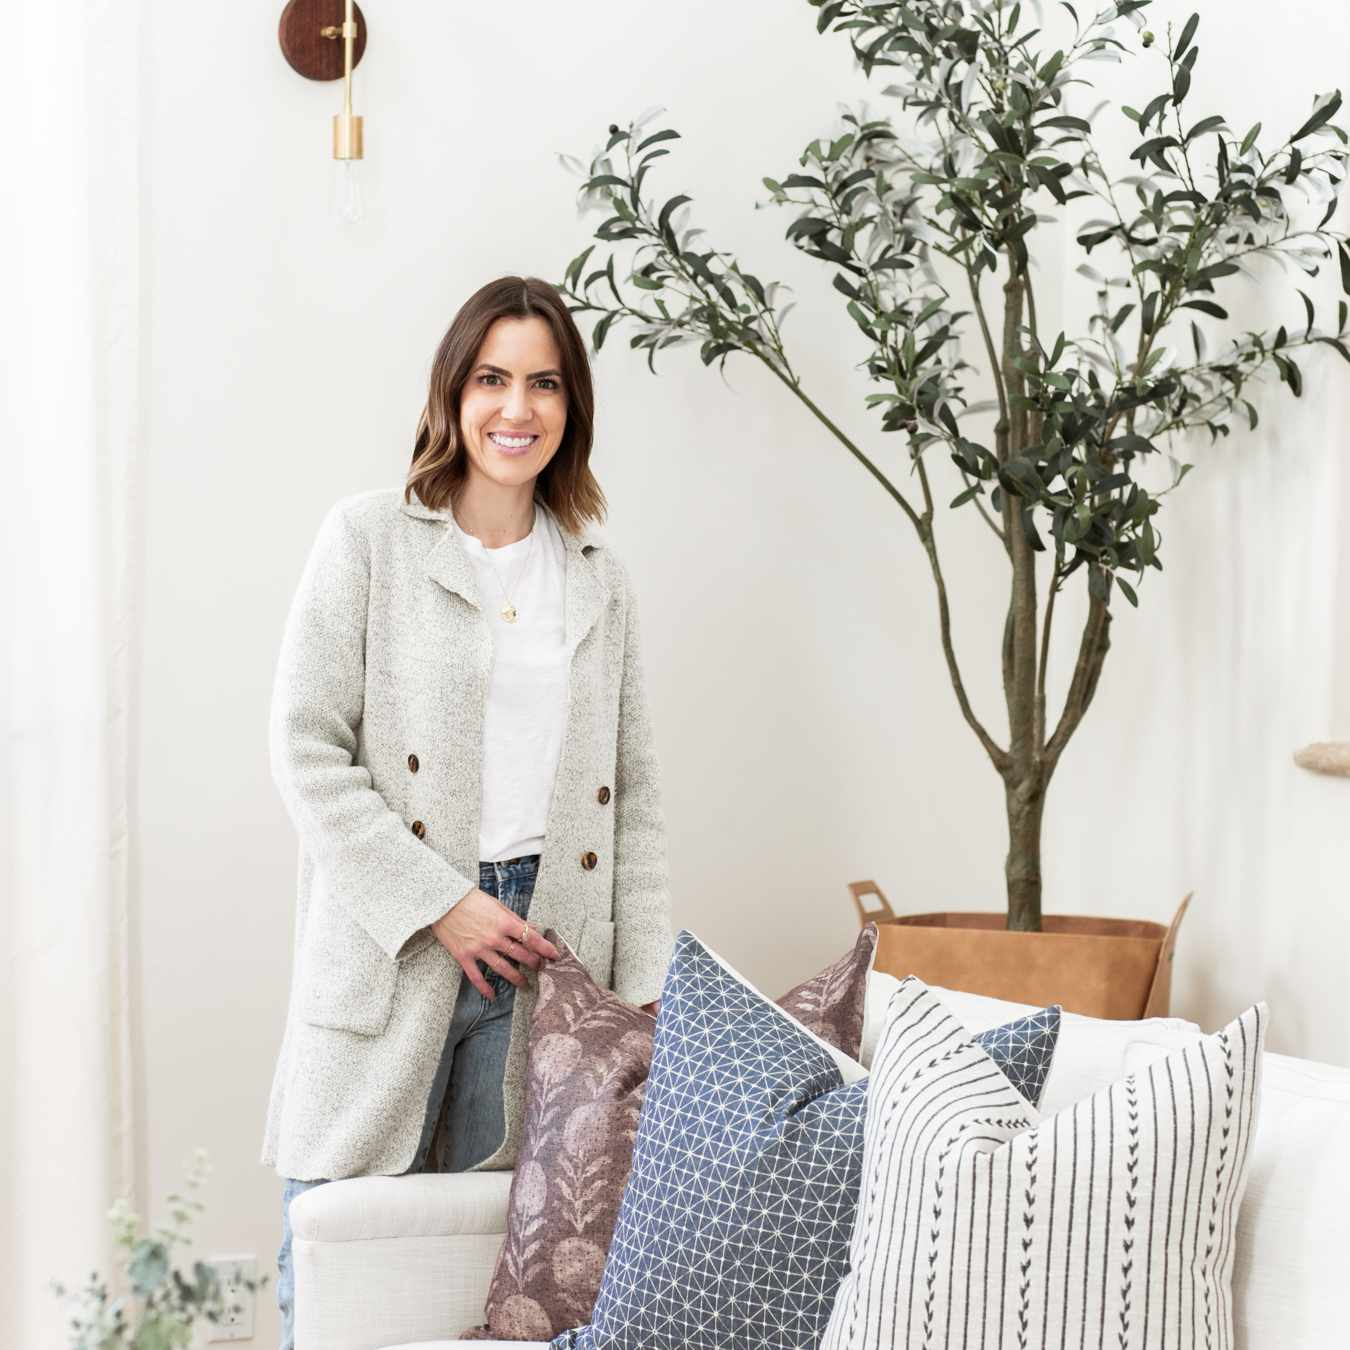 Lauren Meichtry poses in a room near a plant and couch